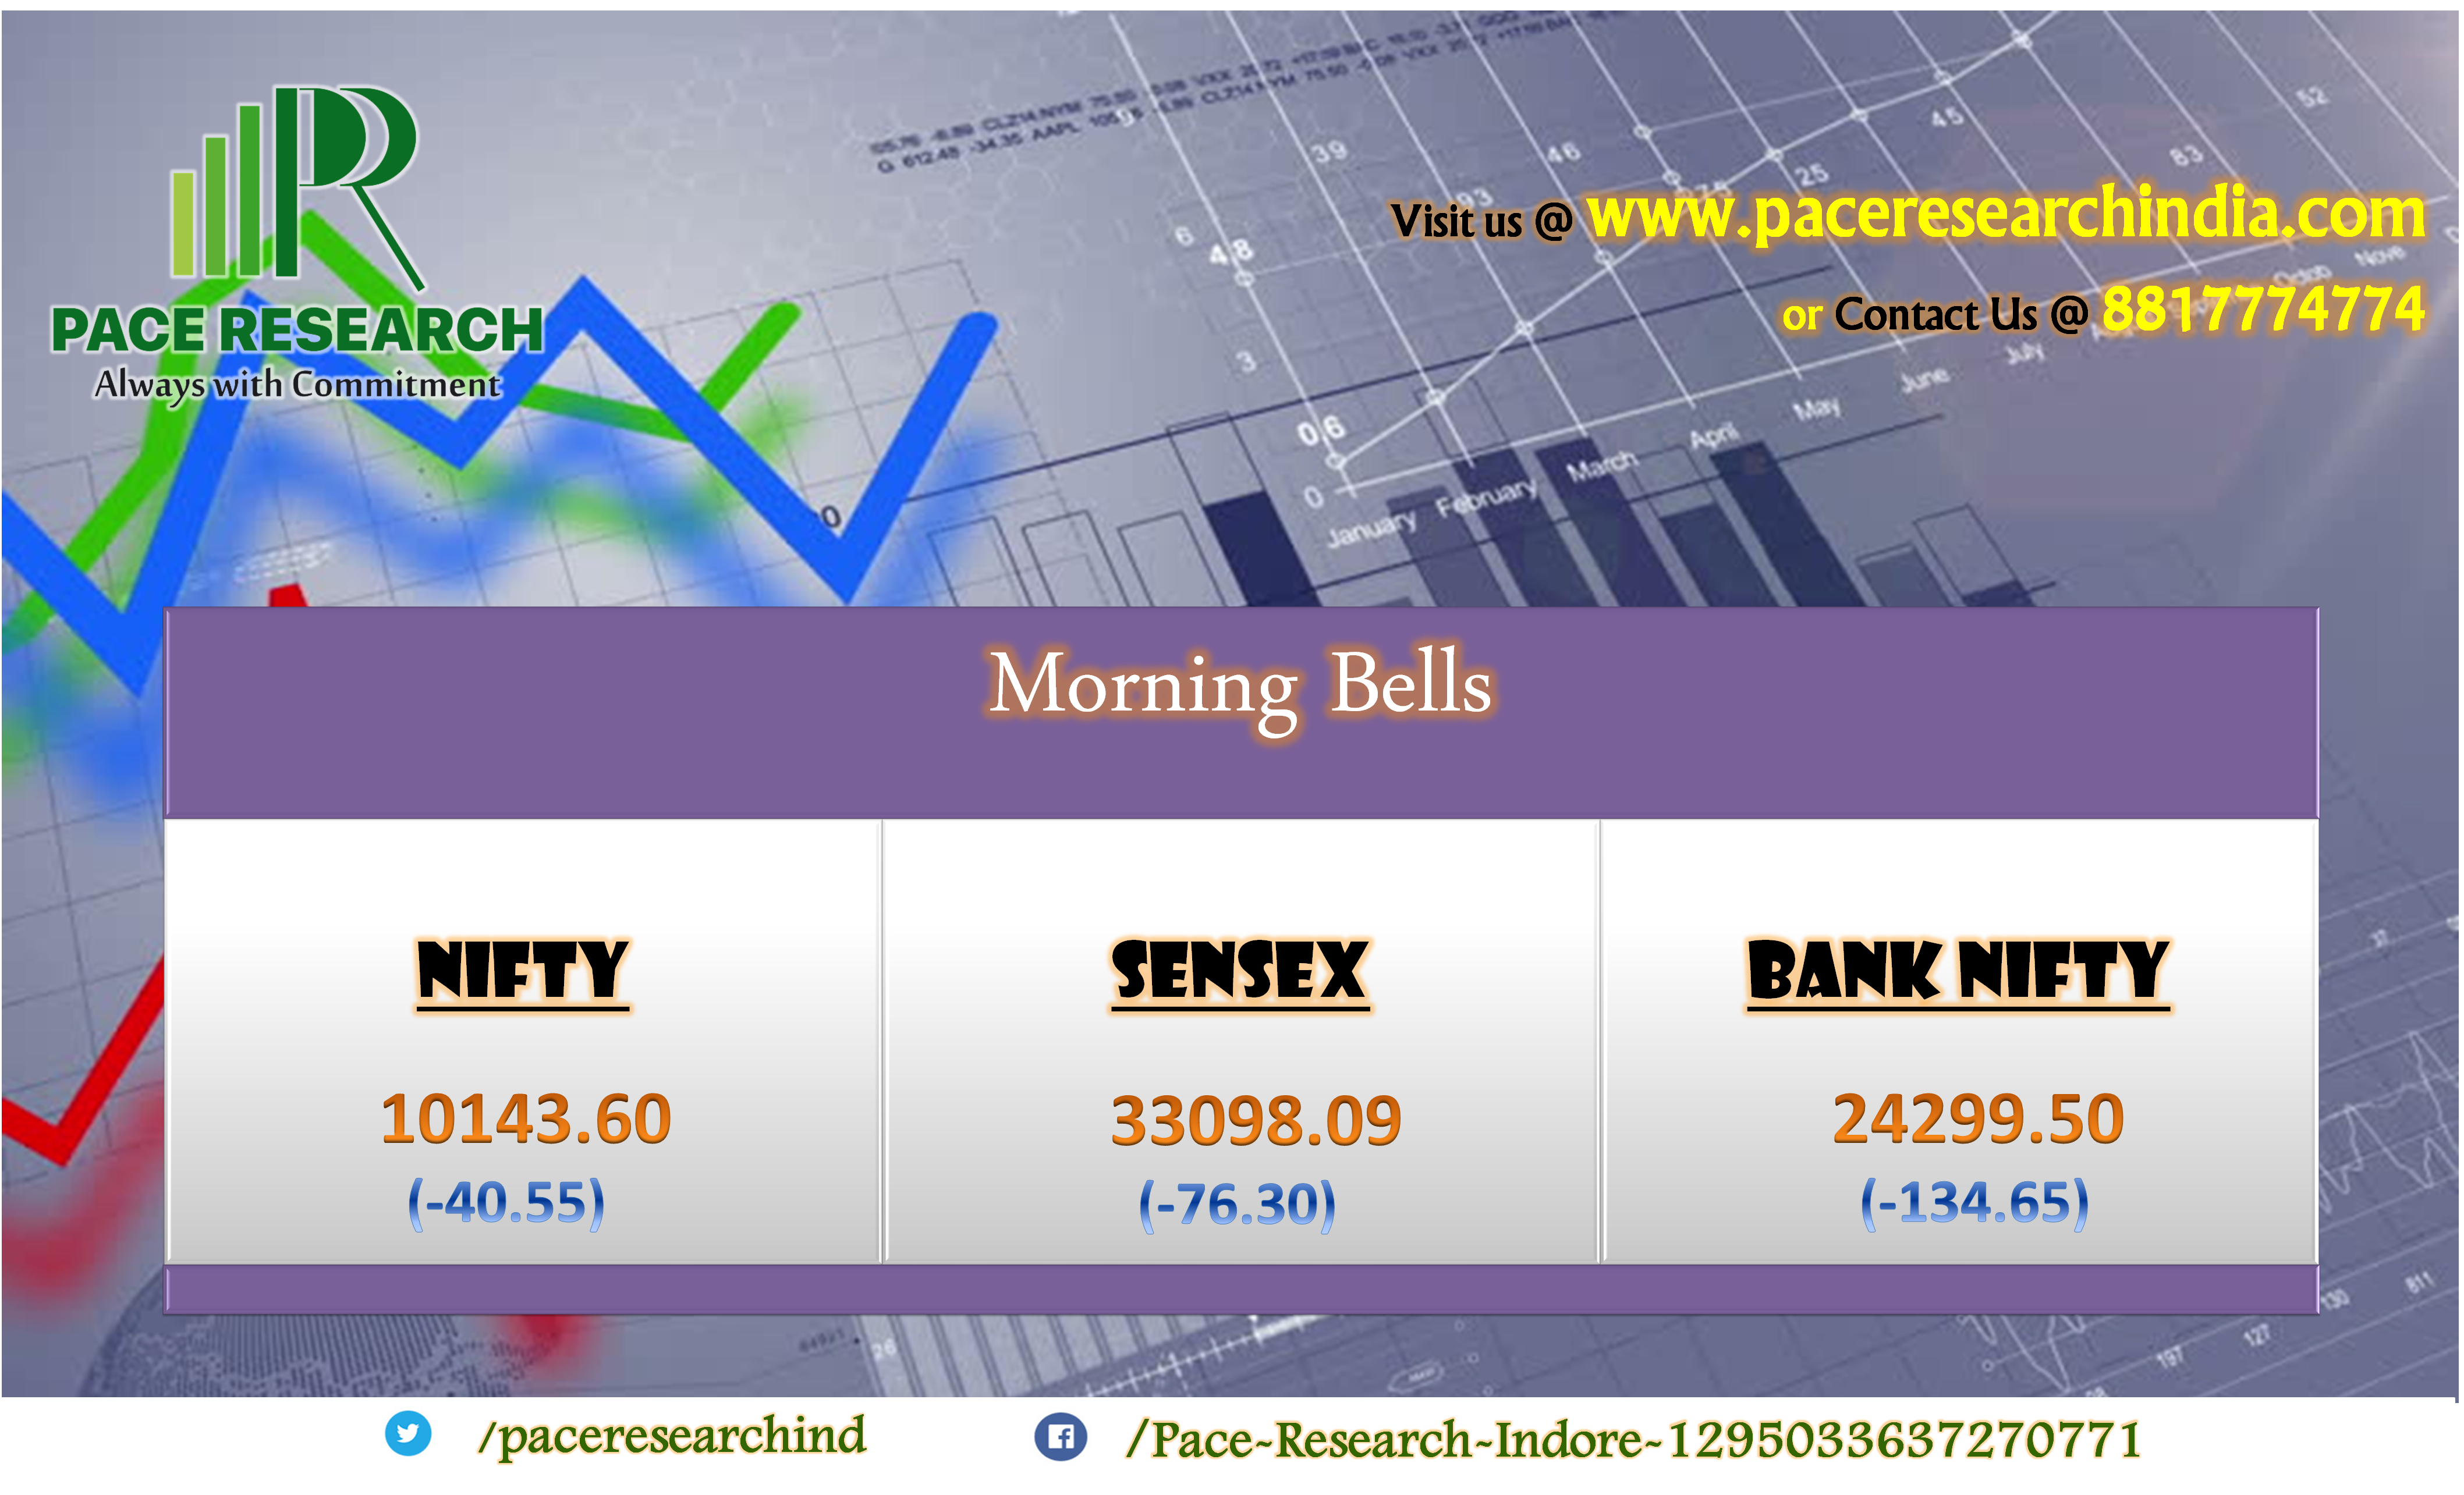 Pace Research Morning Bell Nifty Opens F O Expiry Day Lower